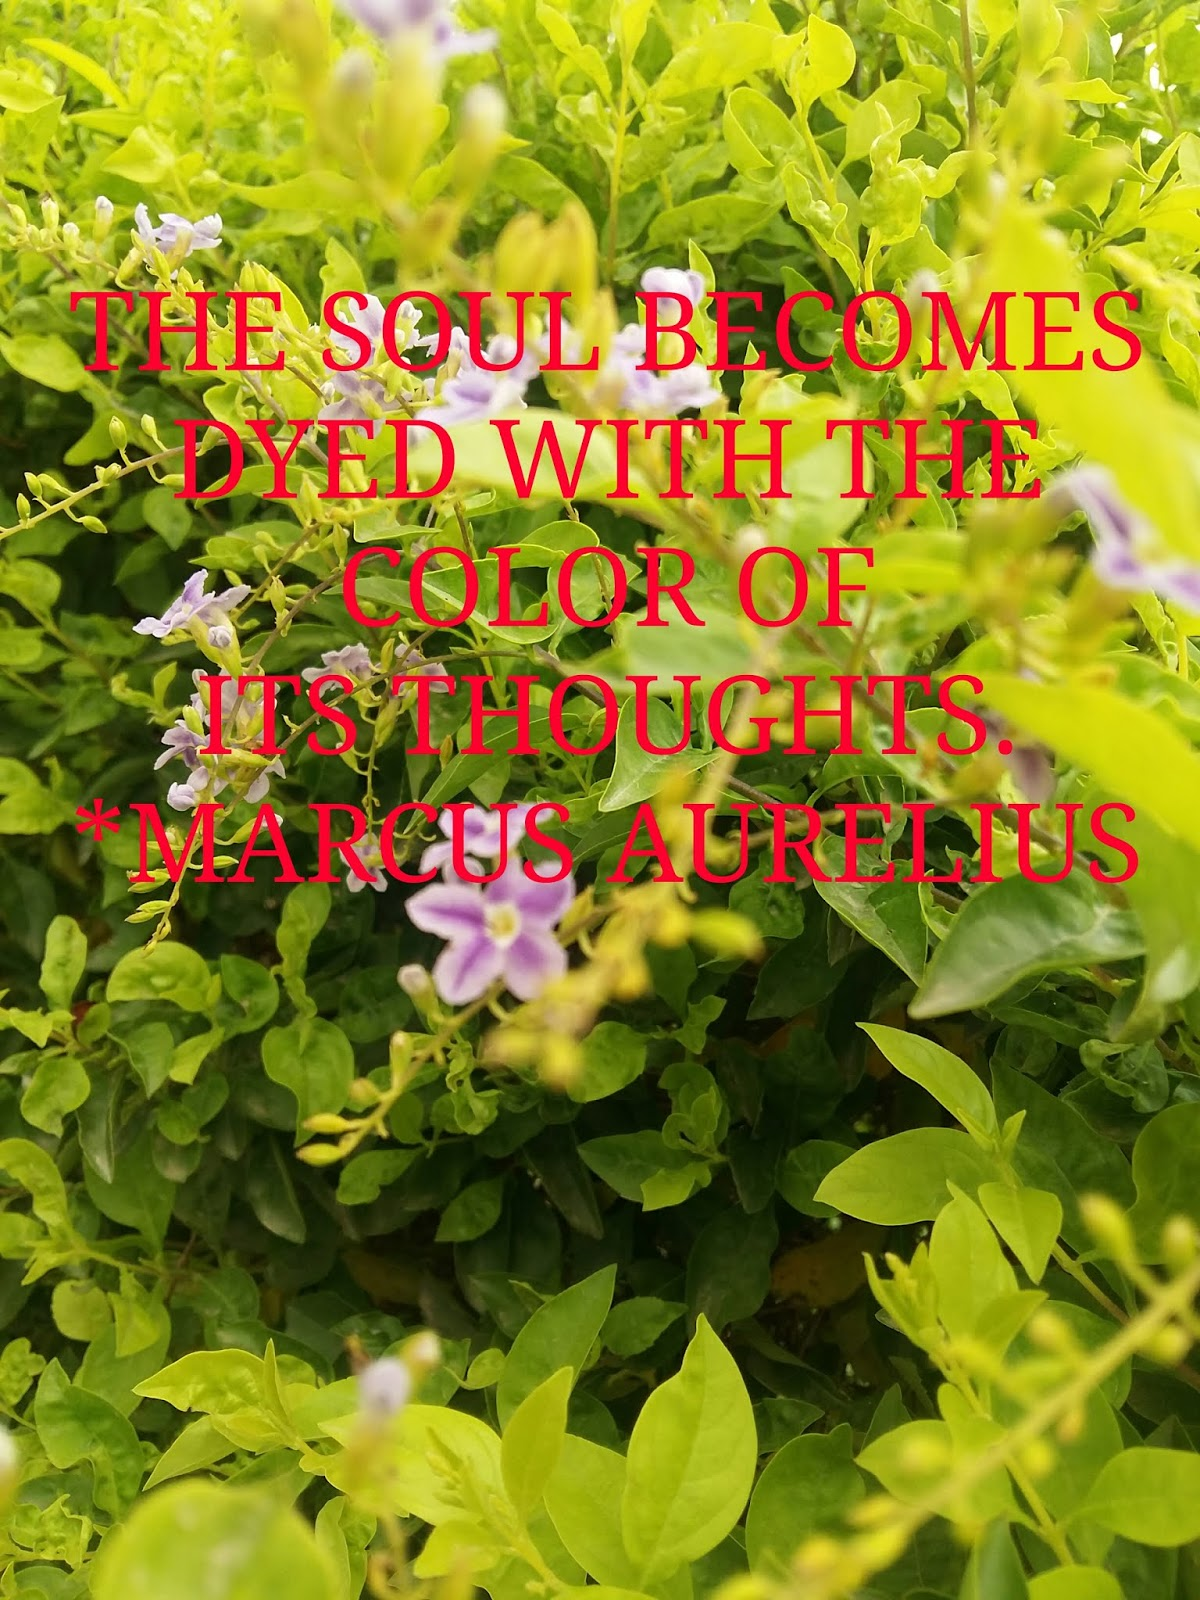 THOUGHTS   THE SOUL BECOMES  DYED WITH THE  COLOR OF ITS  THOUGHTS.  - MARCUS AURELIUS